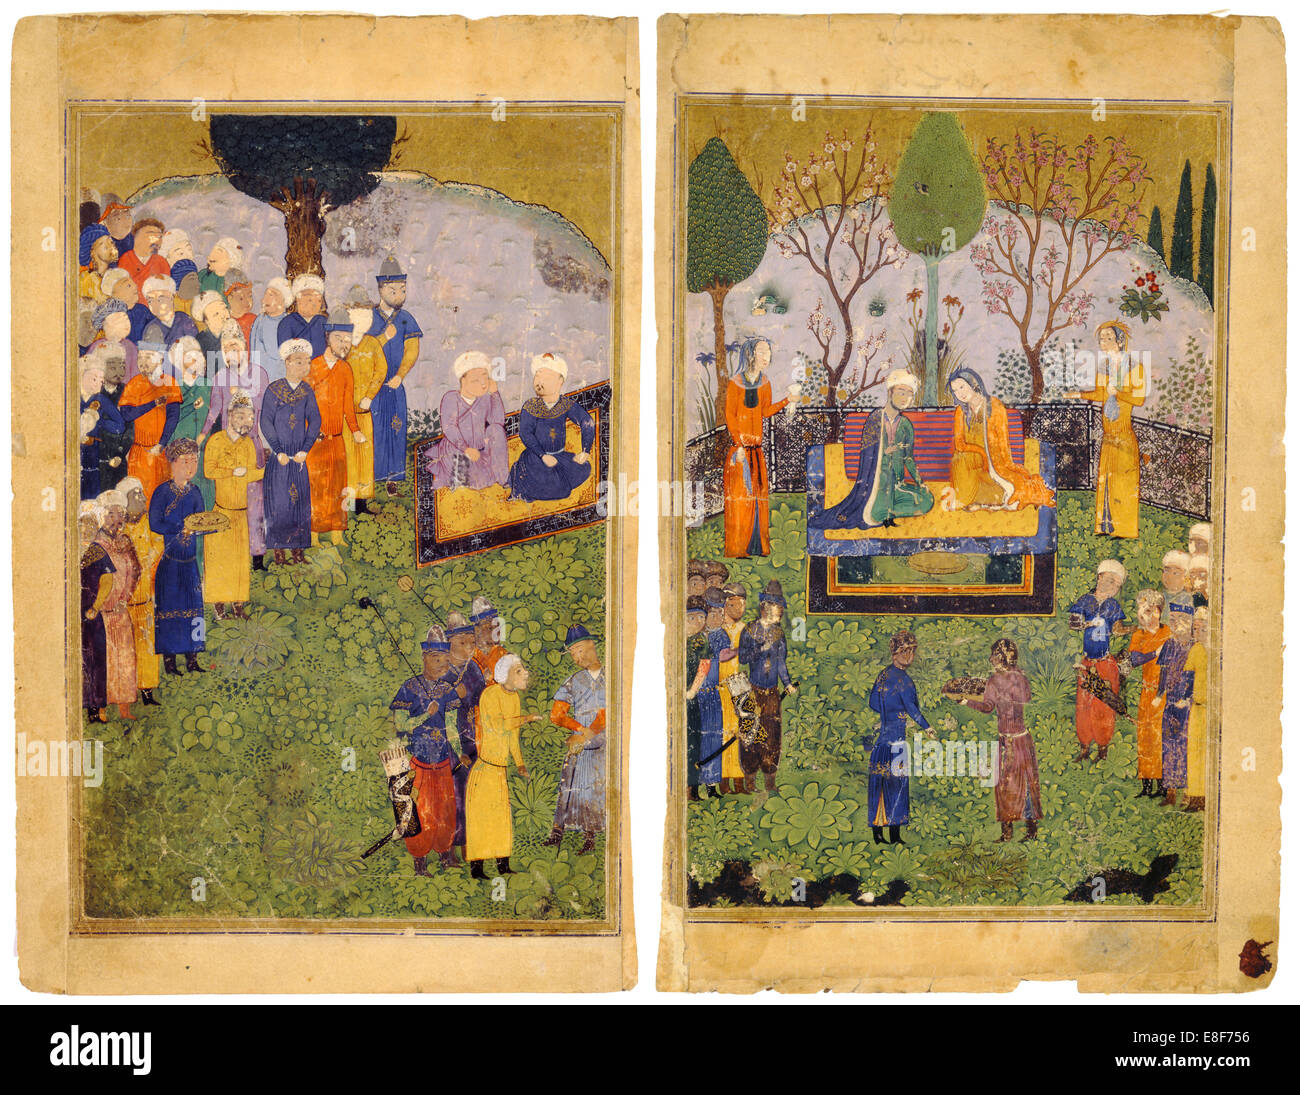 A Princely Couple with Courtiers in a Garden. From the Shahnama (Book of Kings). Artist: Iranian master Stock Photo